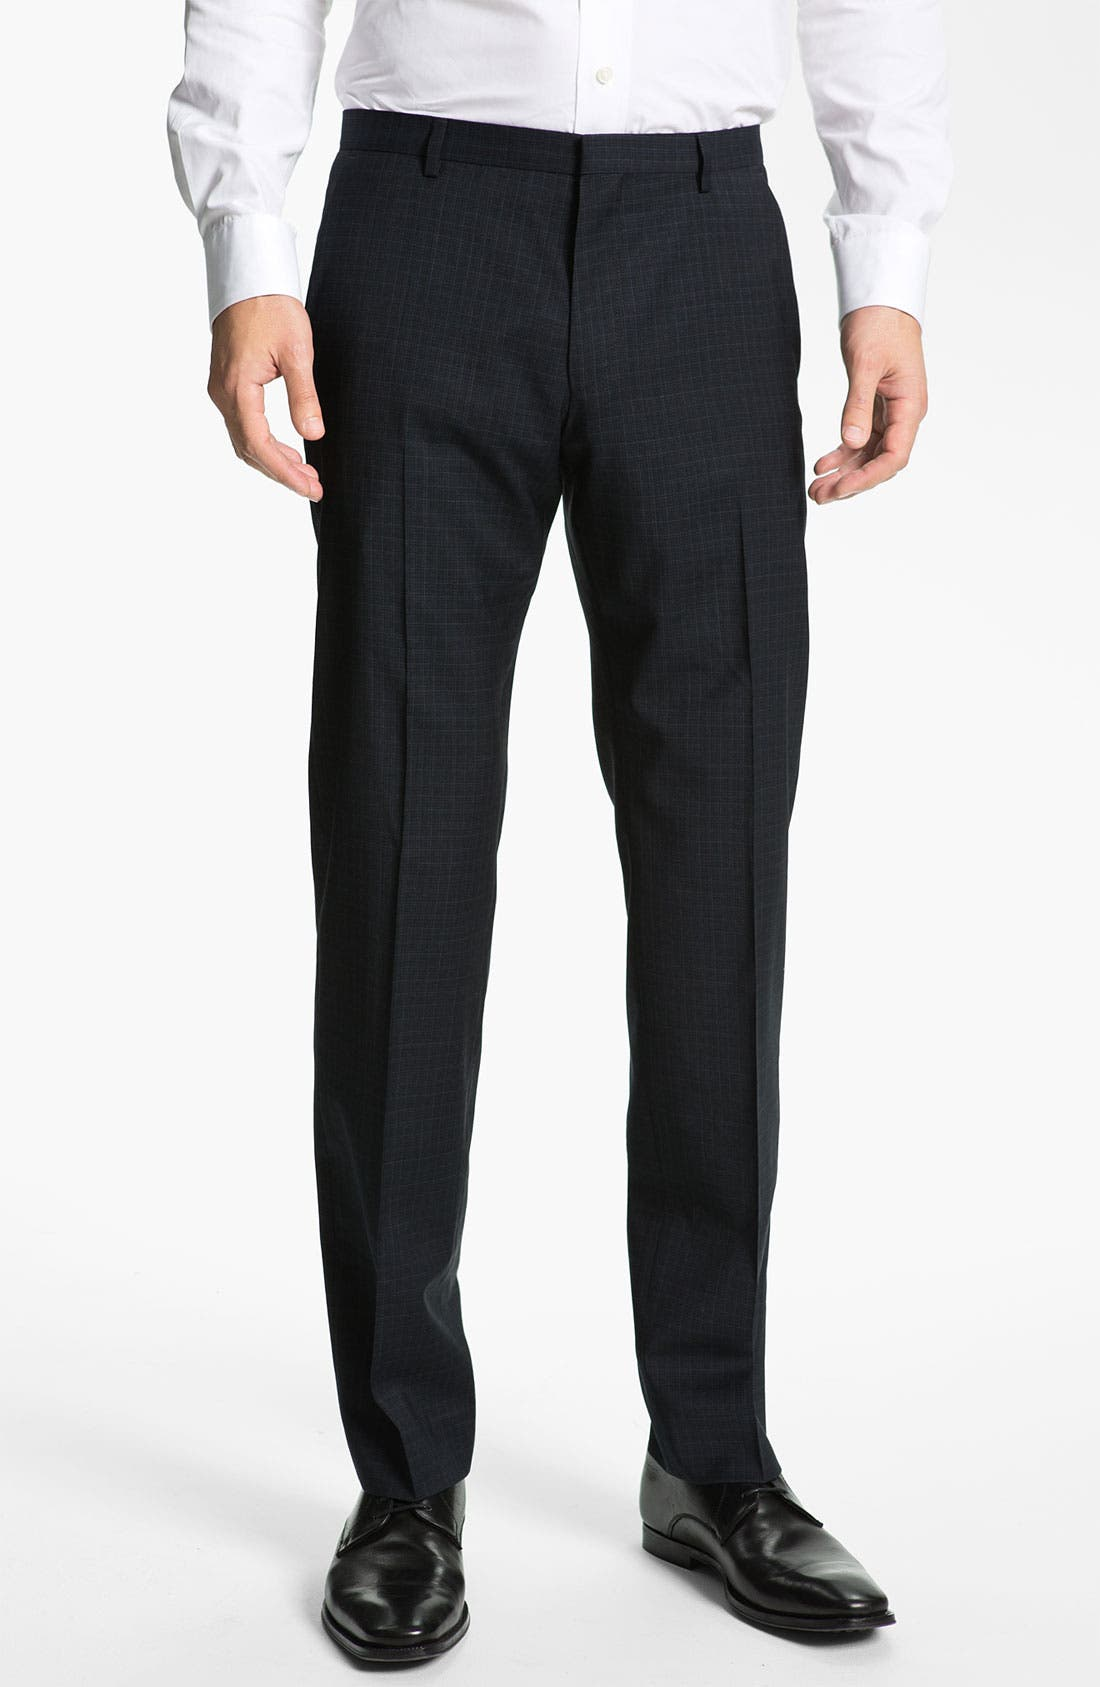 Alternate Image 1 Selected - HUGO 'Heise' Flat Front Wool Pants (Online Only)